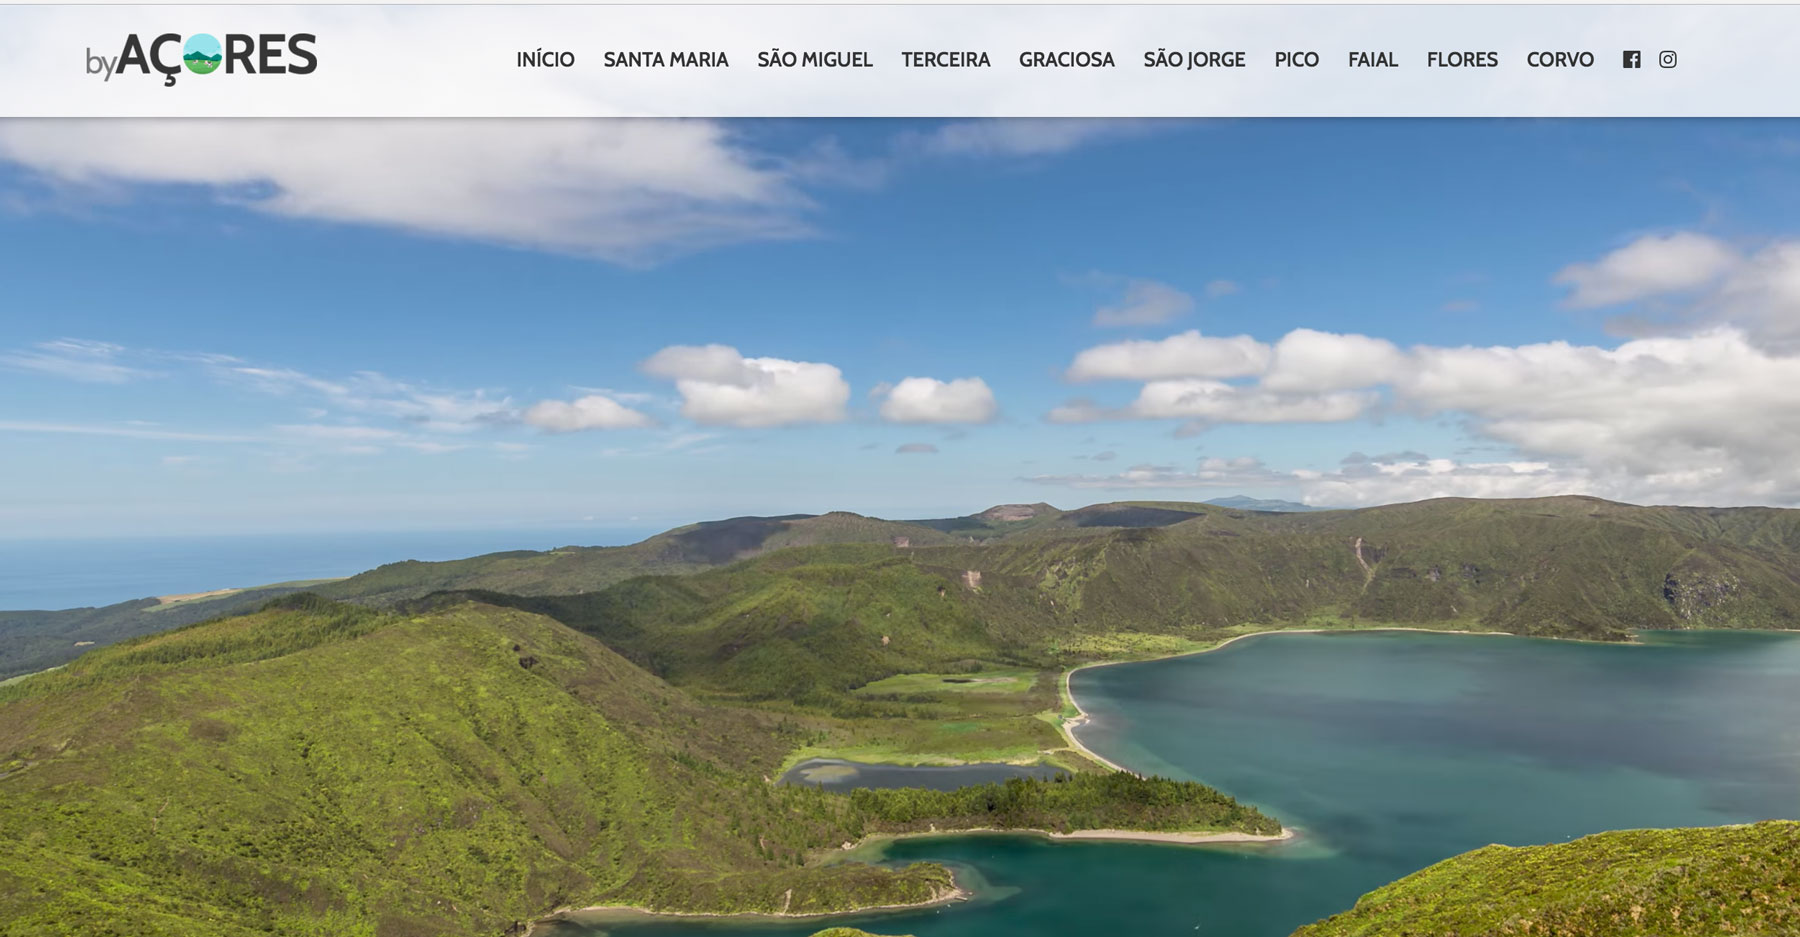 byAçores - All About Azores